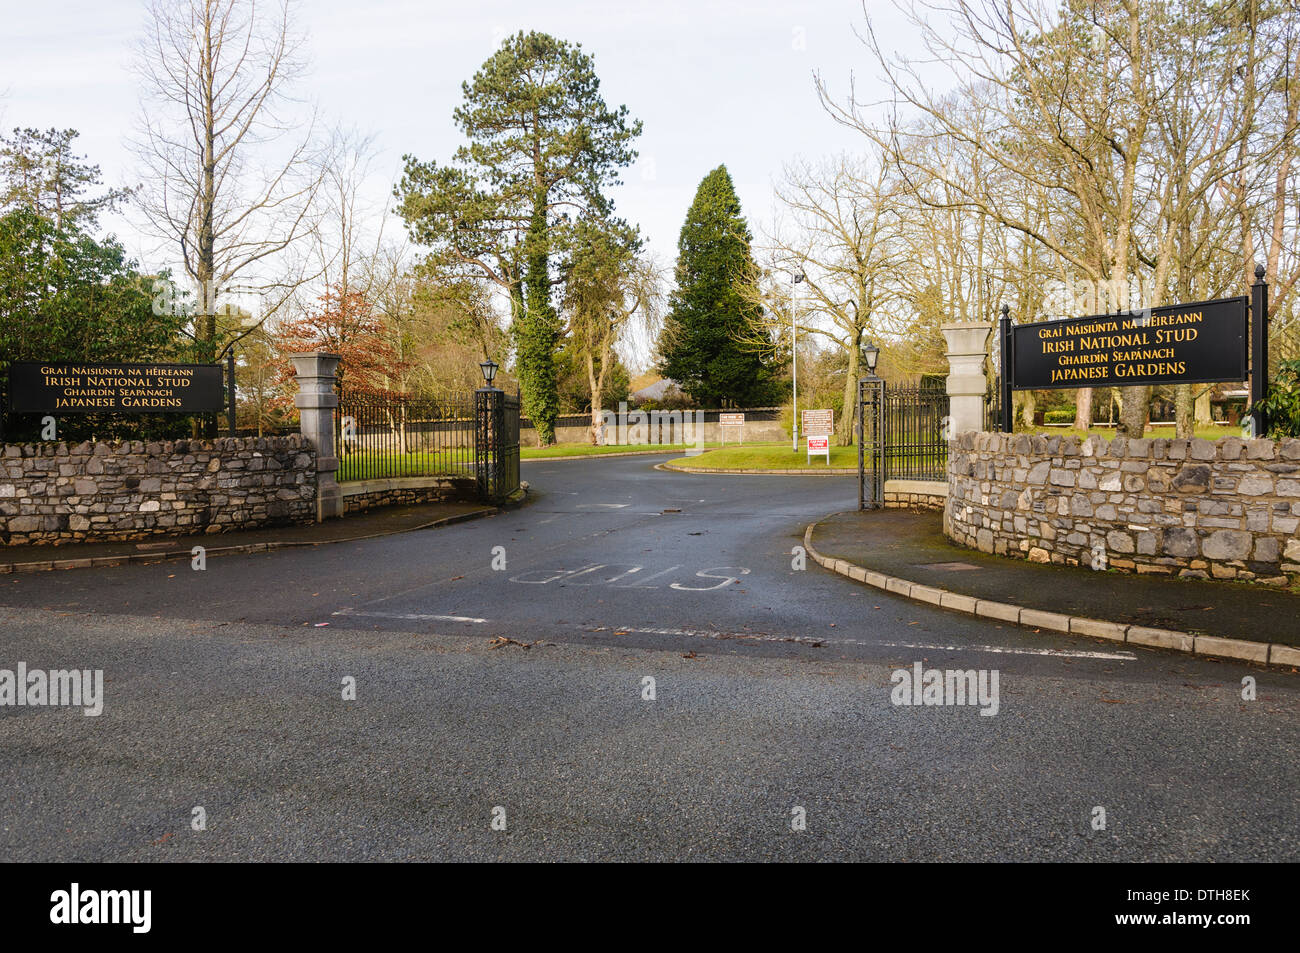 Signs at the entrance to the Irish National Stud and Japanese Gardens in Kildare, Ireland - Stock Image